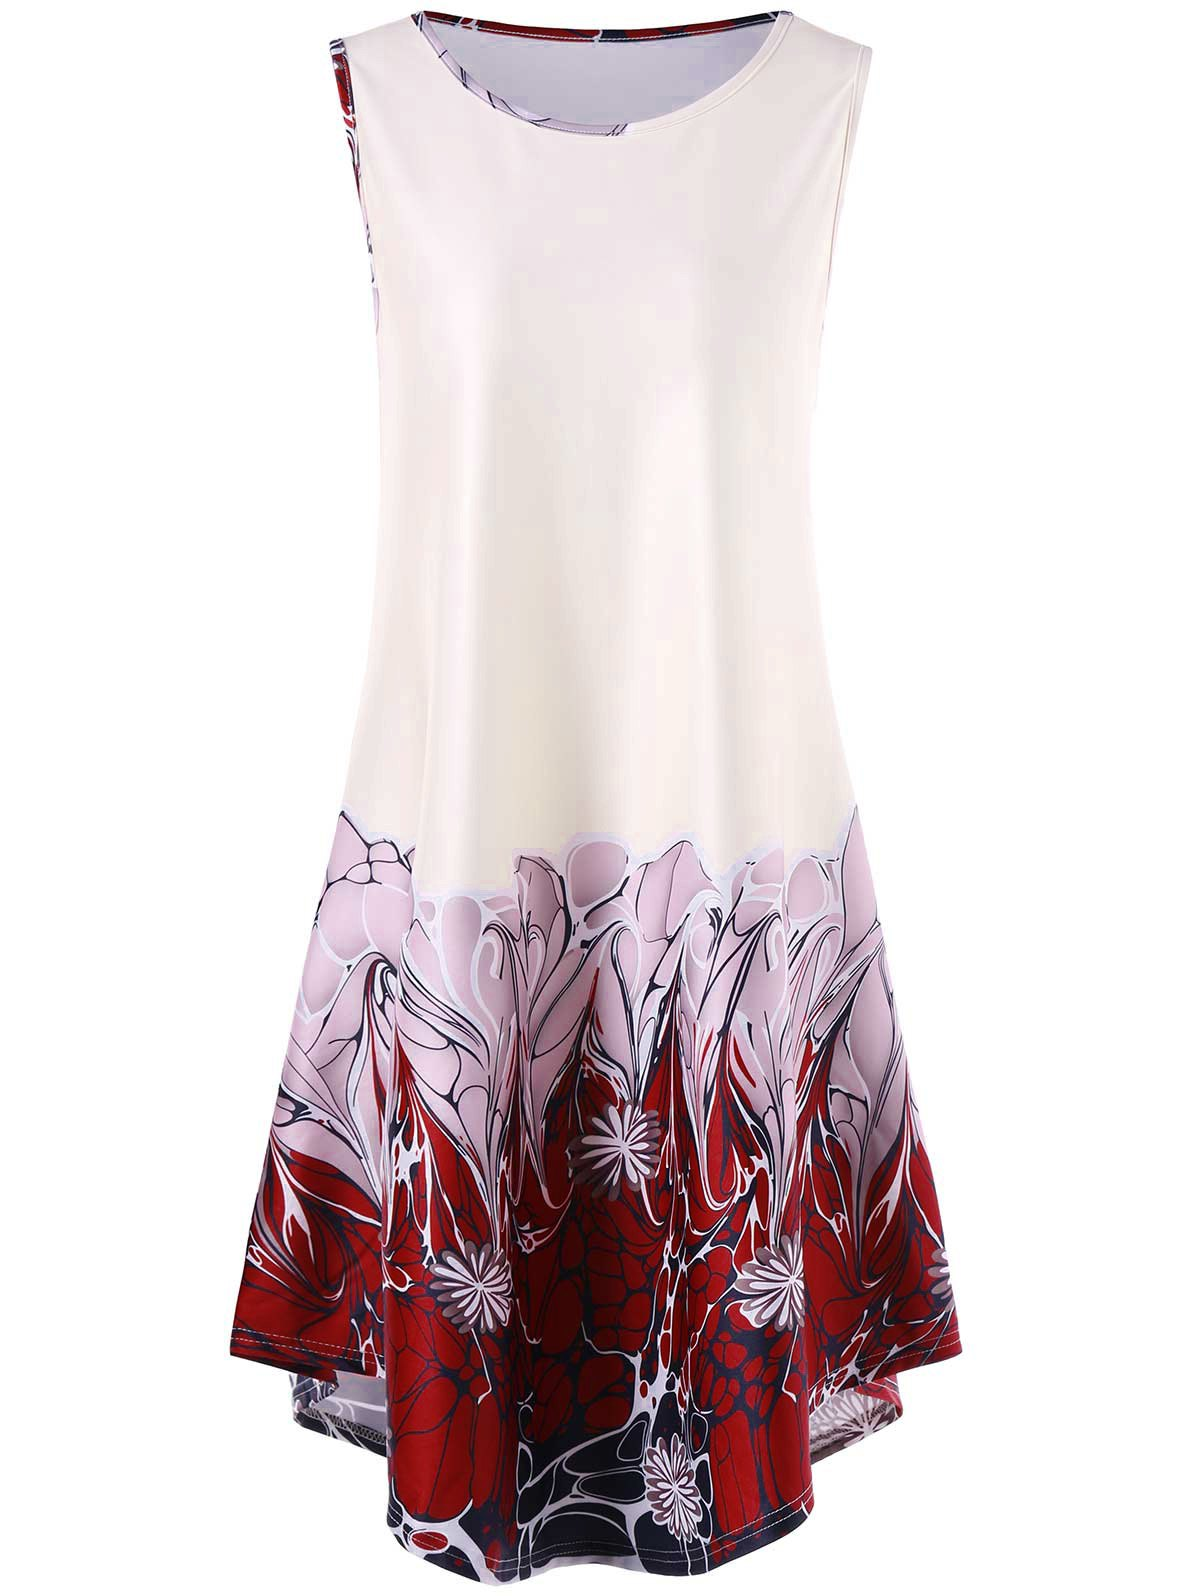 Sleeveless Asymmetrical Floral Print DressWOMEN<br><br>Size: L; Color: WHITE; Style: Casual; Material: Polyester,Spandex; Silhouette: A-Line; Dresses Length: Knee-Length; Neckline: Round Collar; Sleeve Length: Sleeveless; Pattern Type: Floral; With Belt: No; Season: Fall,Spring,Summer; Weight: 0.3500kg; Package Contents: 1 x Dress; Occasion: Casual;